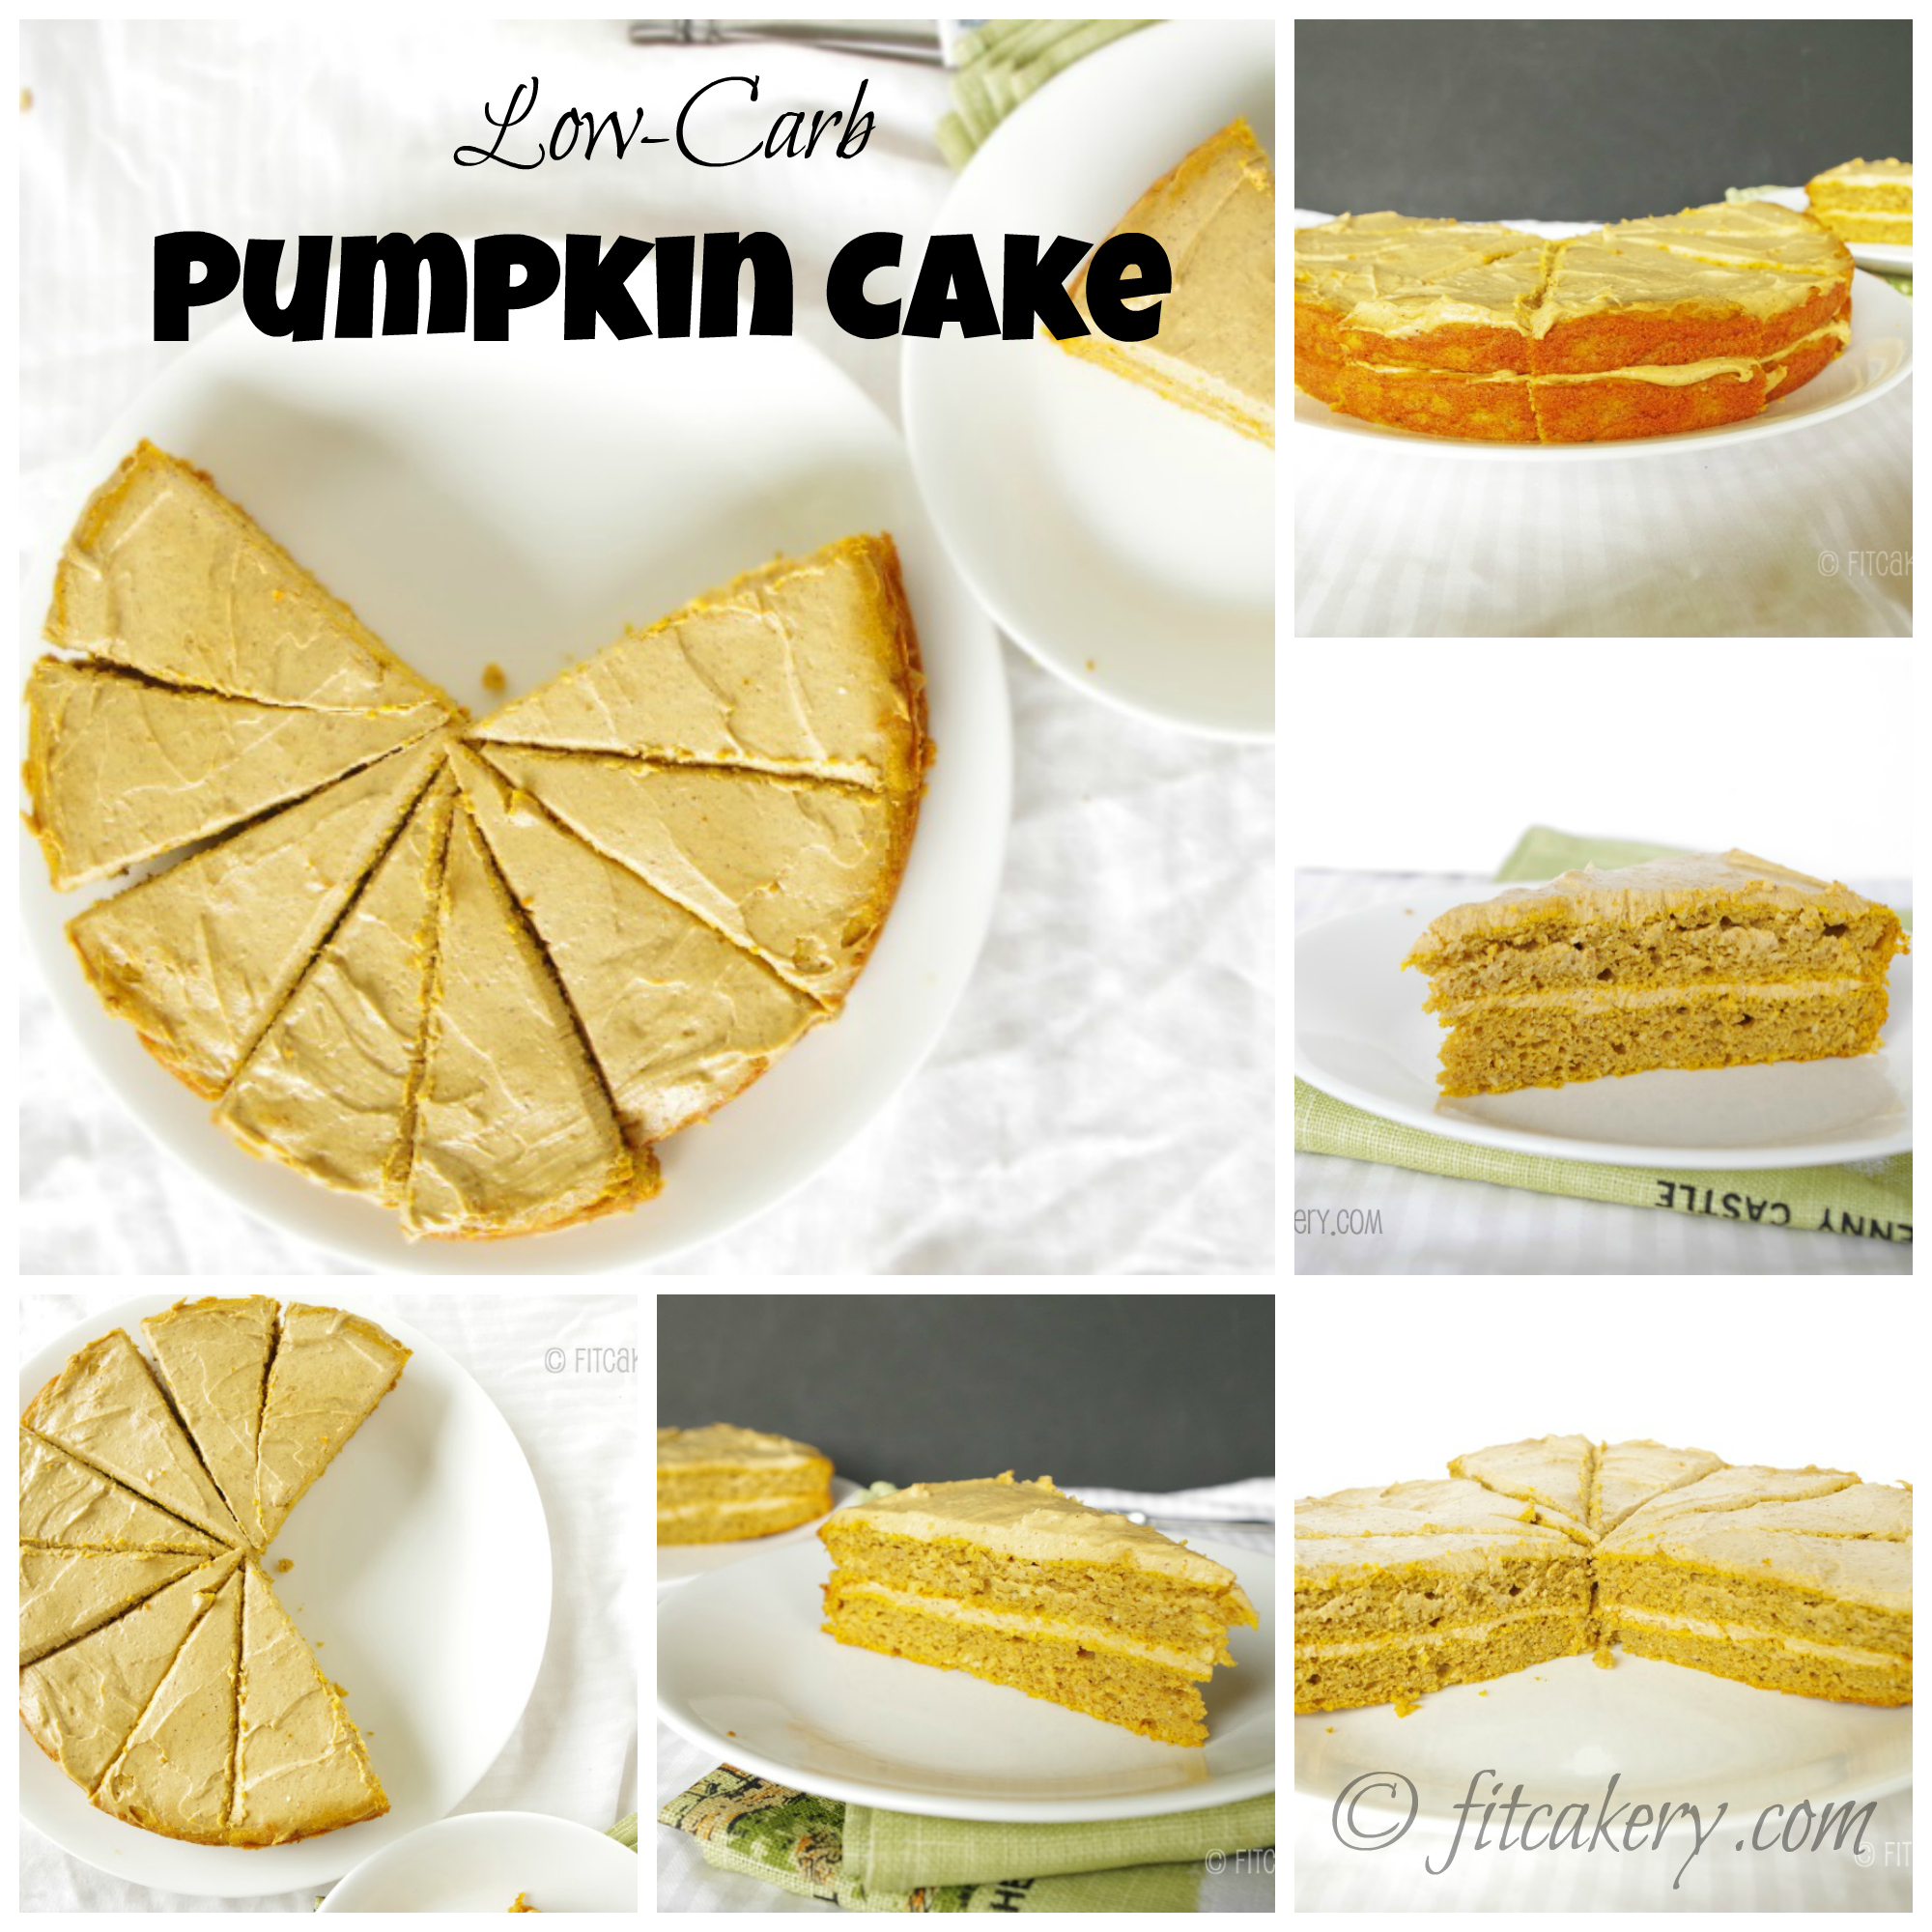 Gluten-free and low-carb spiced pumpkin cake is SO delicious and moist, with a decadent cream cheese frosting, I couldn't believe it!